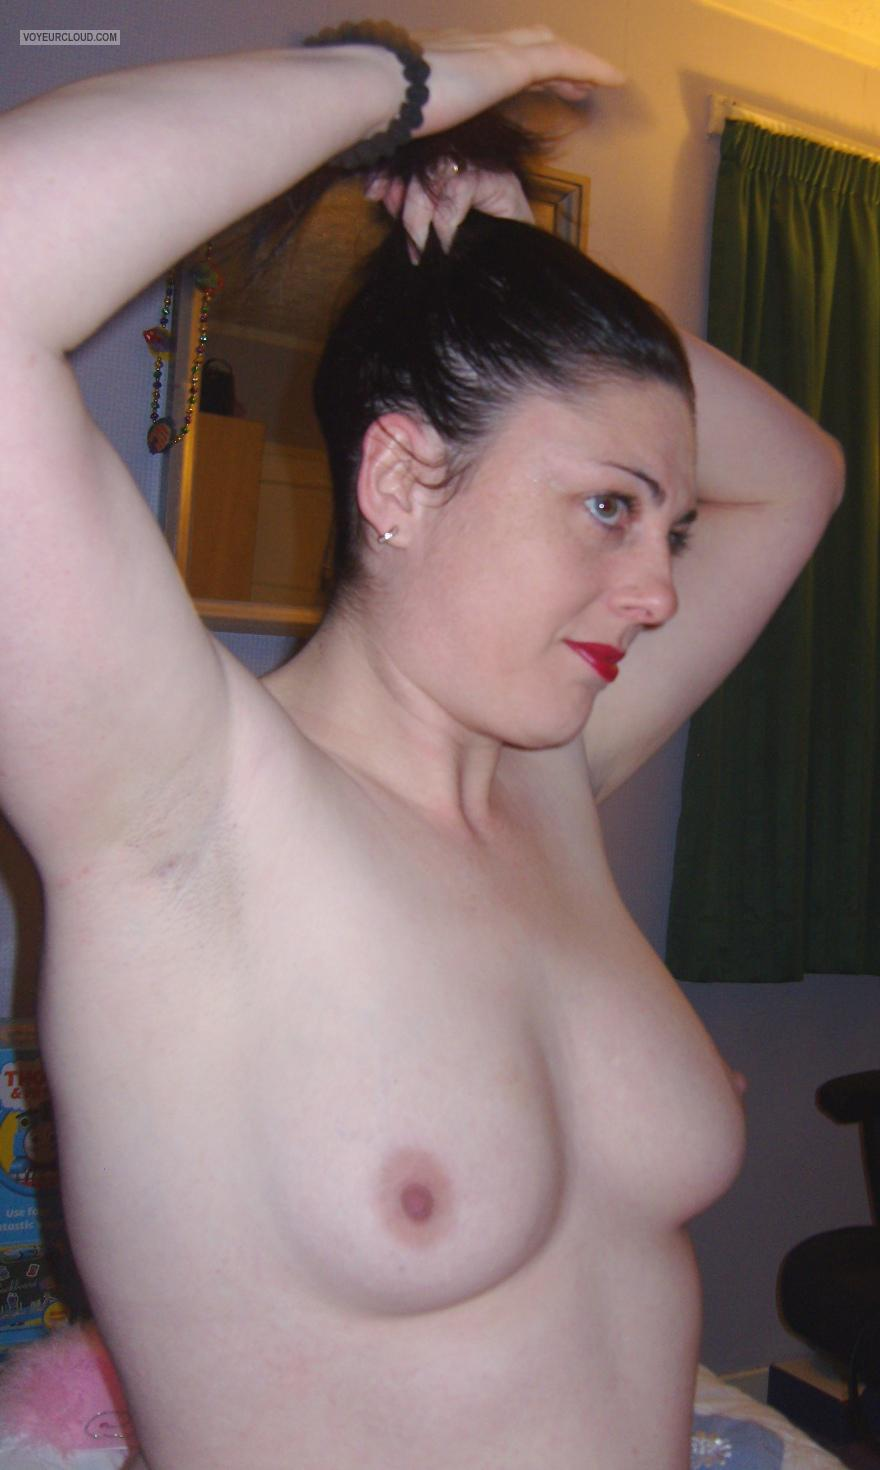 Medium Tits Of My Wife Topless Angel